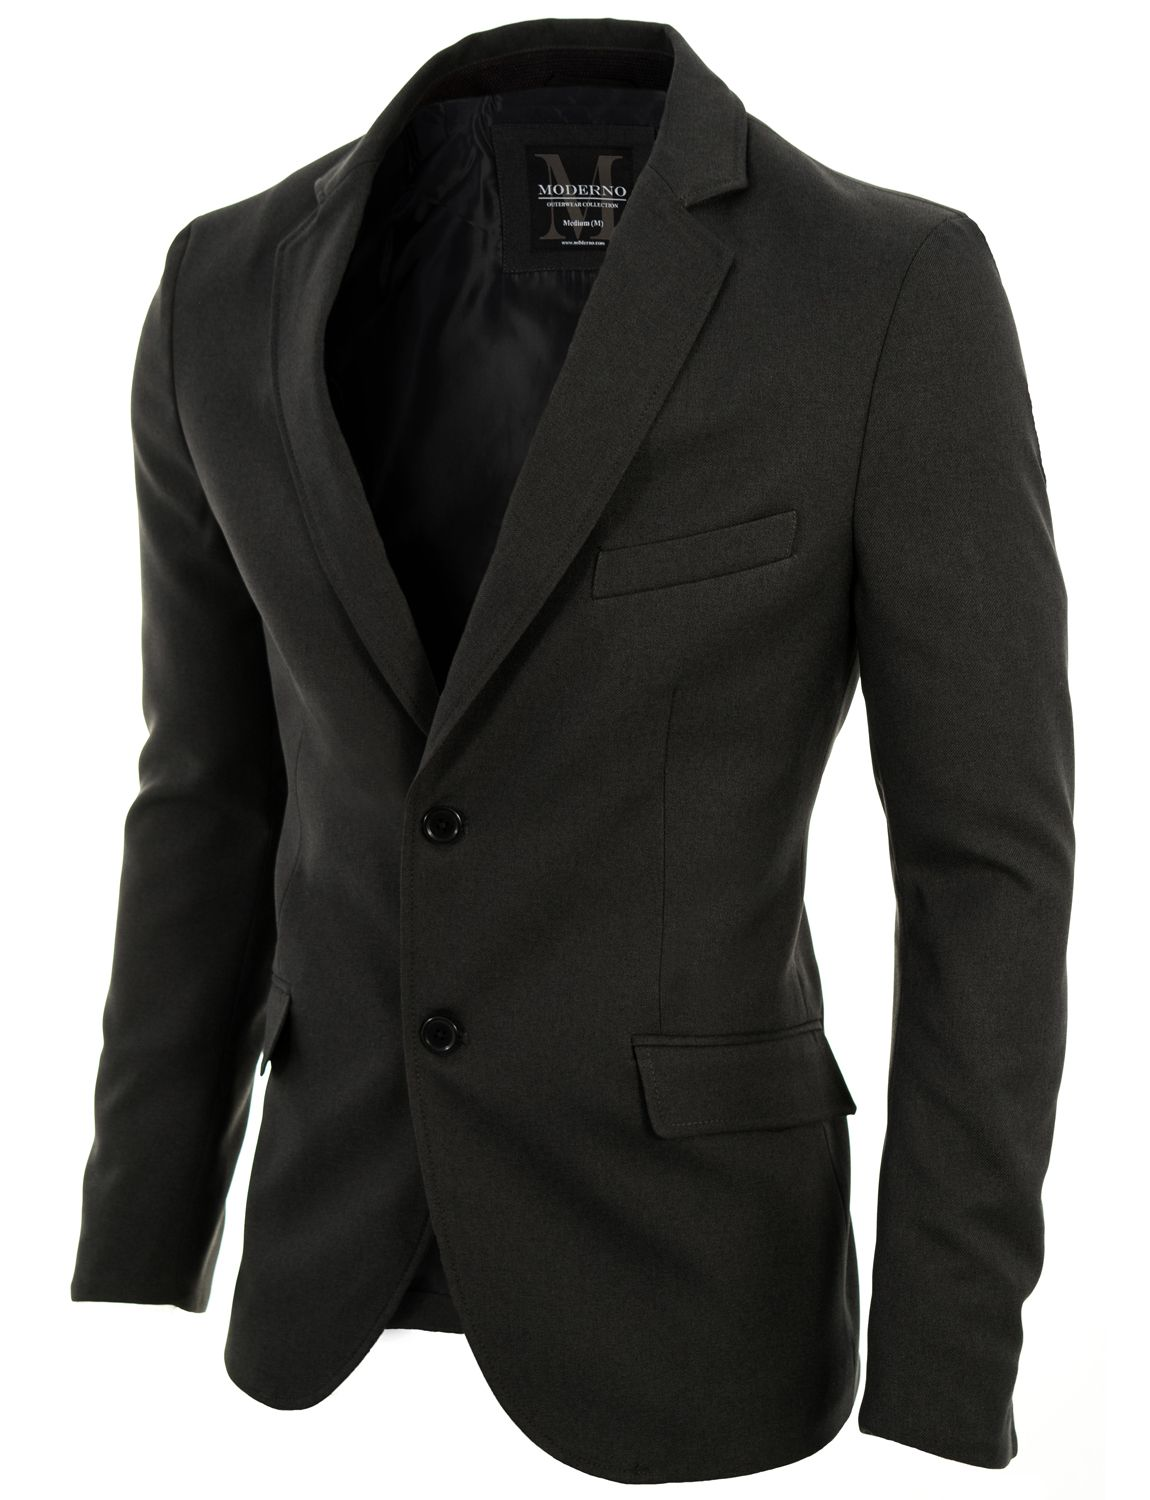 2f06a05a2f9c MODERNO - Mens Slim Fit Two Buttons Blazer Jacket Gray (MOD14514B ...